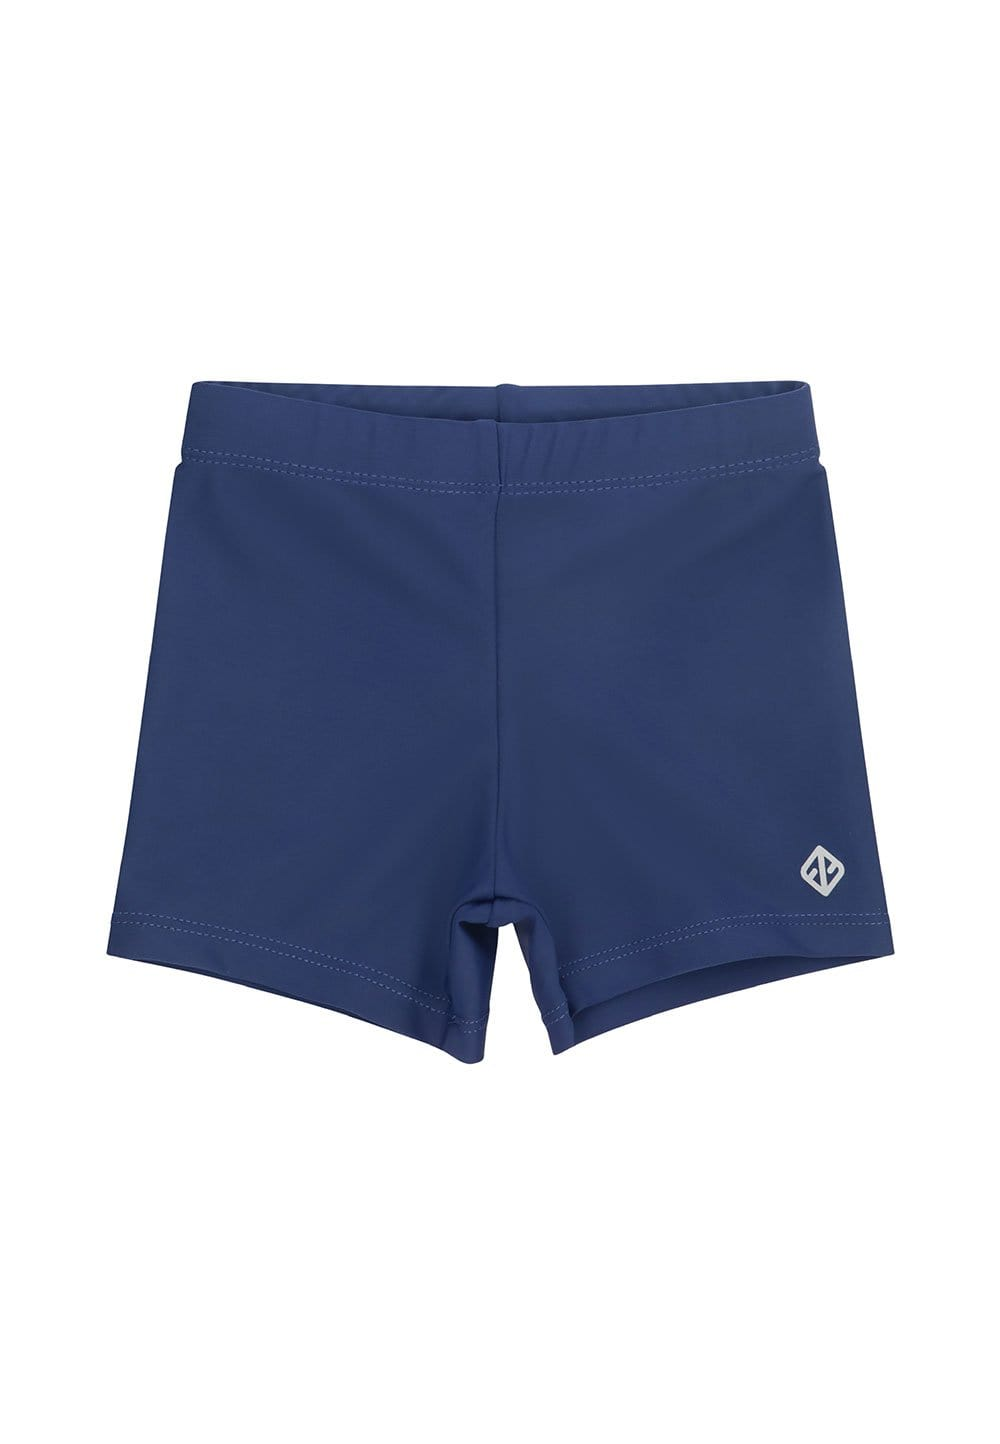 FUNFIT UPF50+ Junior Bottom (Unisex) in Navy